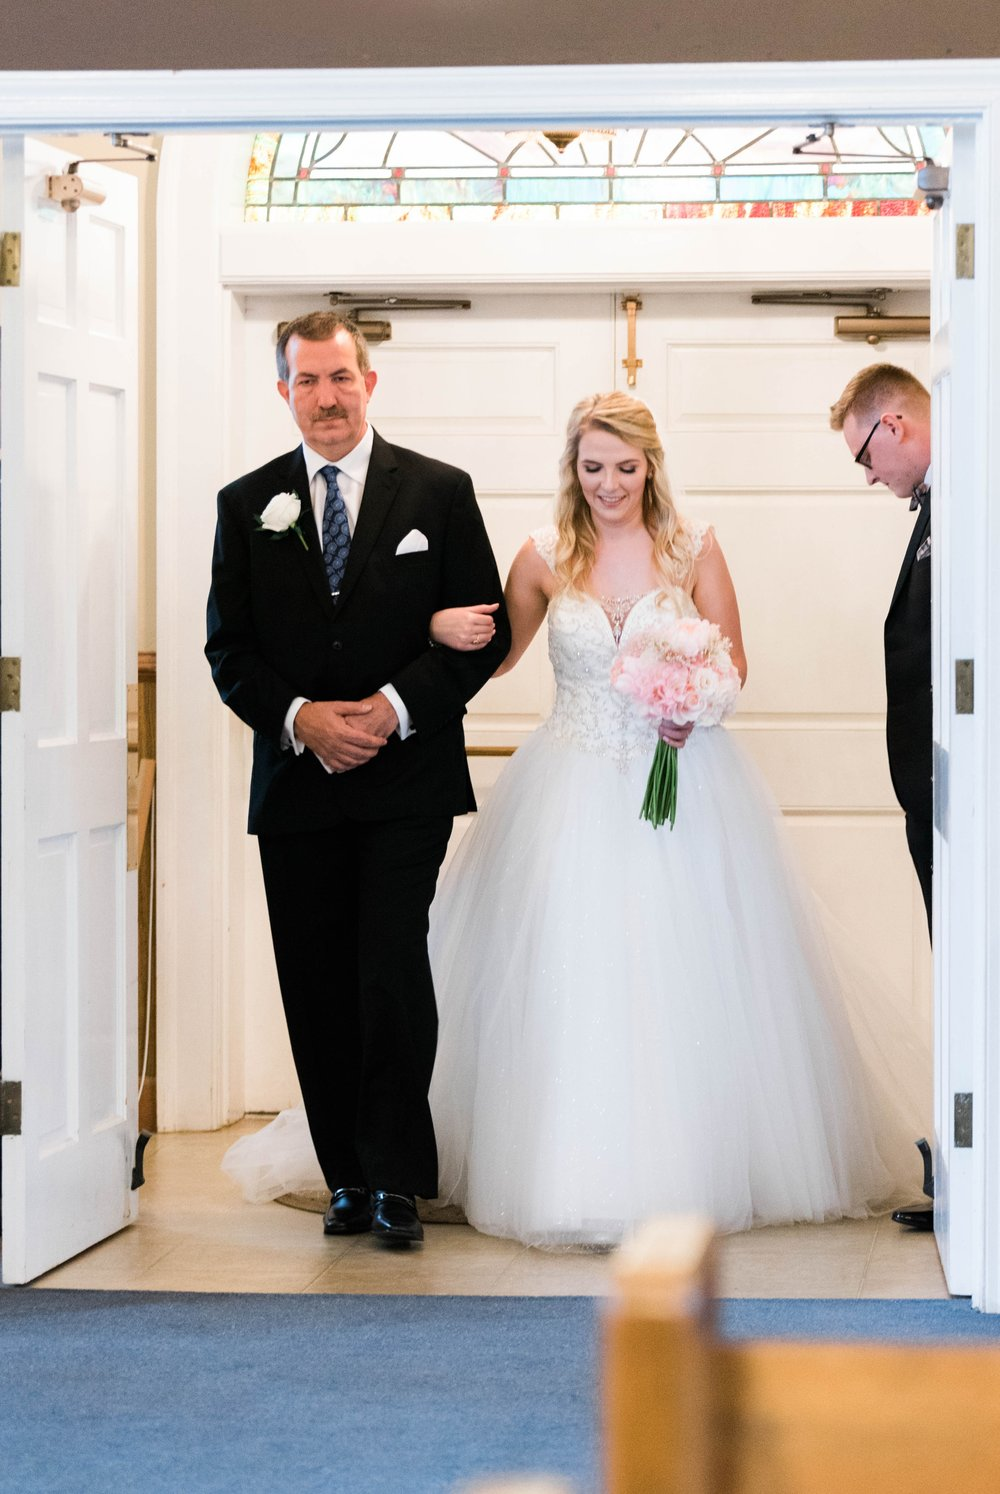 LynchburgVirginia_Virginiaweddingphotographer_michaelkim 48.jpg